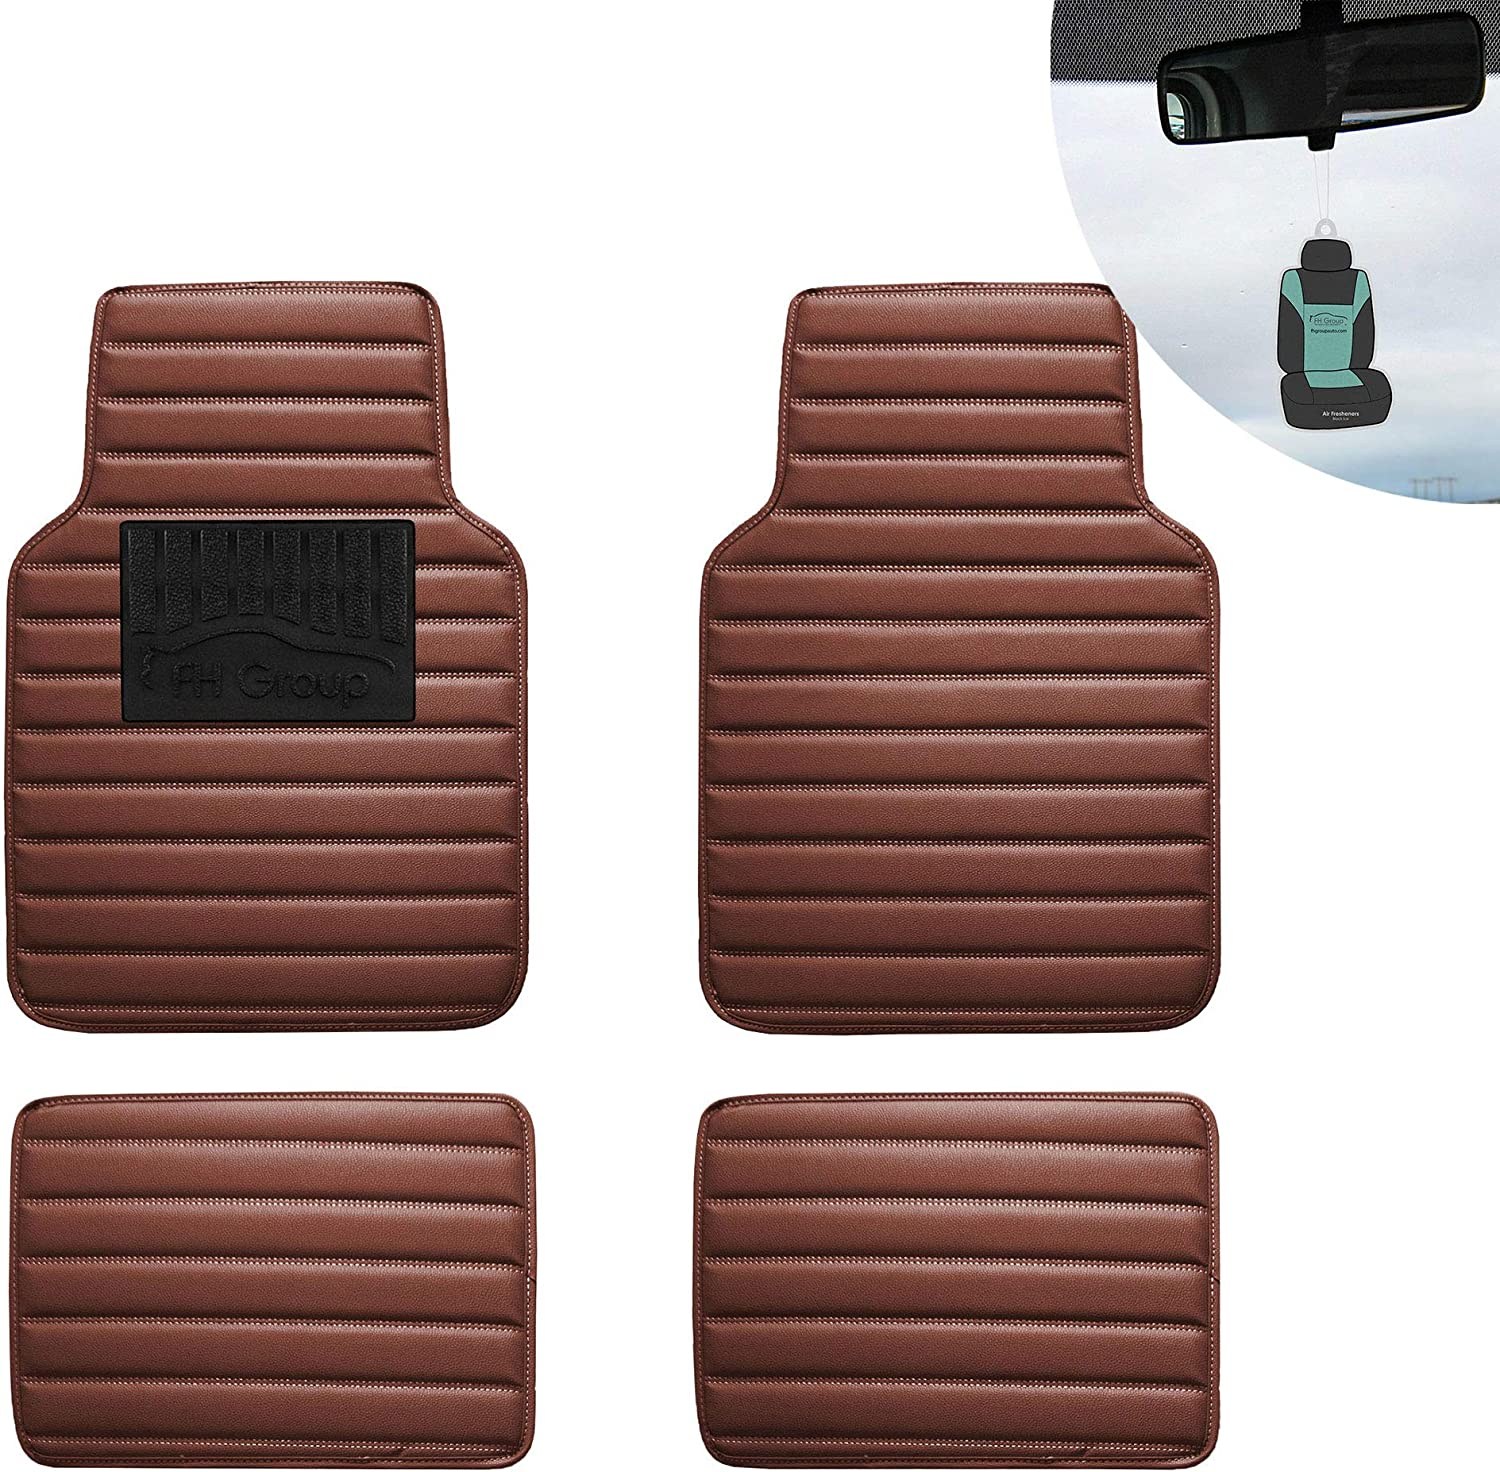 FH Group 12001 Luxury All-Season Heavy Duty Faux Leather Car Floor Mats Stripe Design w. High Tech 3-D Anti-Skid/Slip Backing, Brown Color w. Gift-Universal fit for Cars, auto, Trucks, SUV